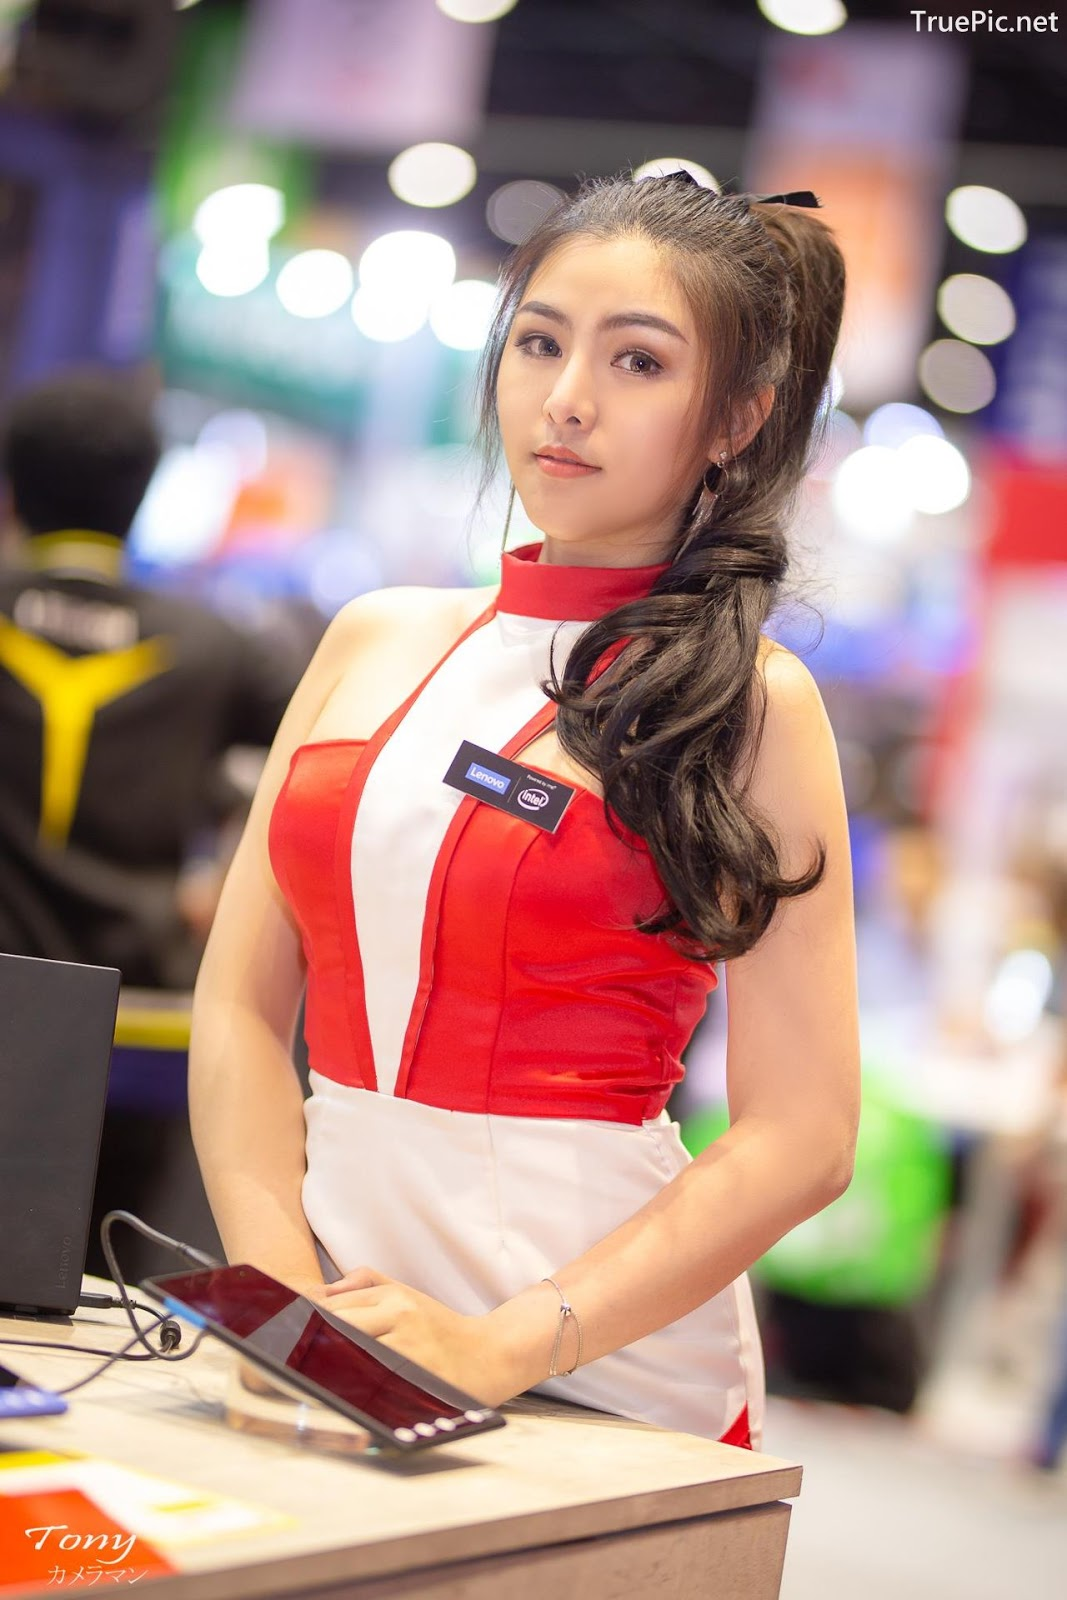 Image-Thailand-Hot-Model-Thai-PG-At-Commart-2018-TruePic.net- Picture-29